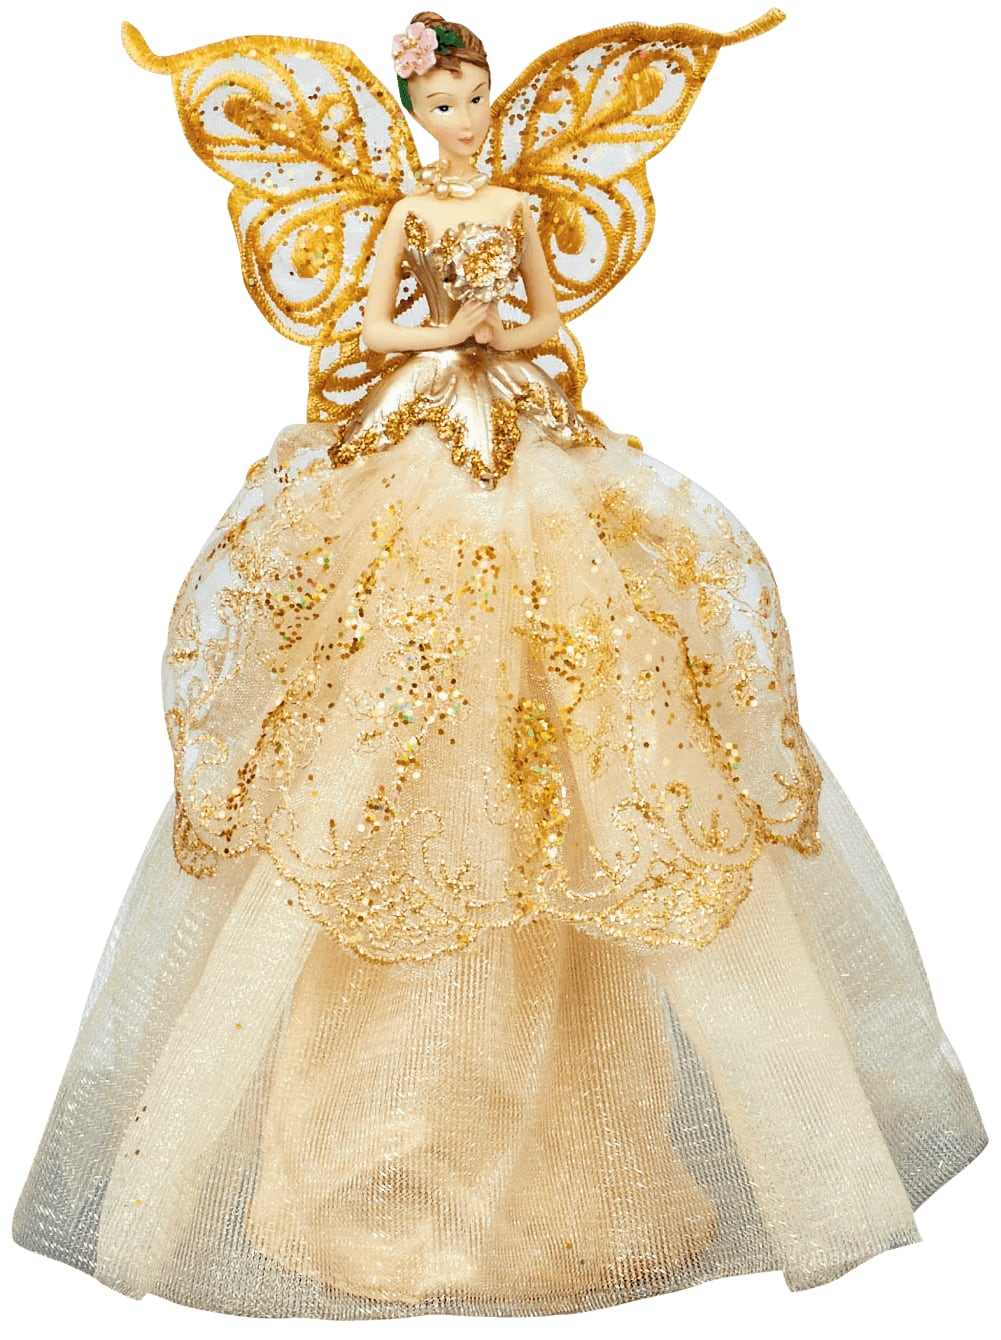 Golden Fairy Christmas Tree Topper from Pines and Needles